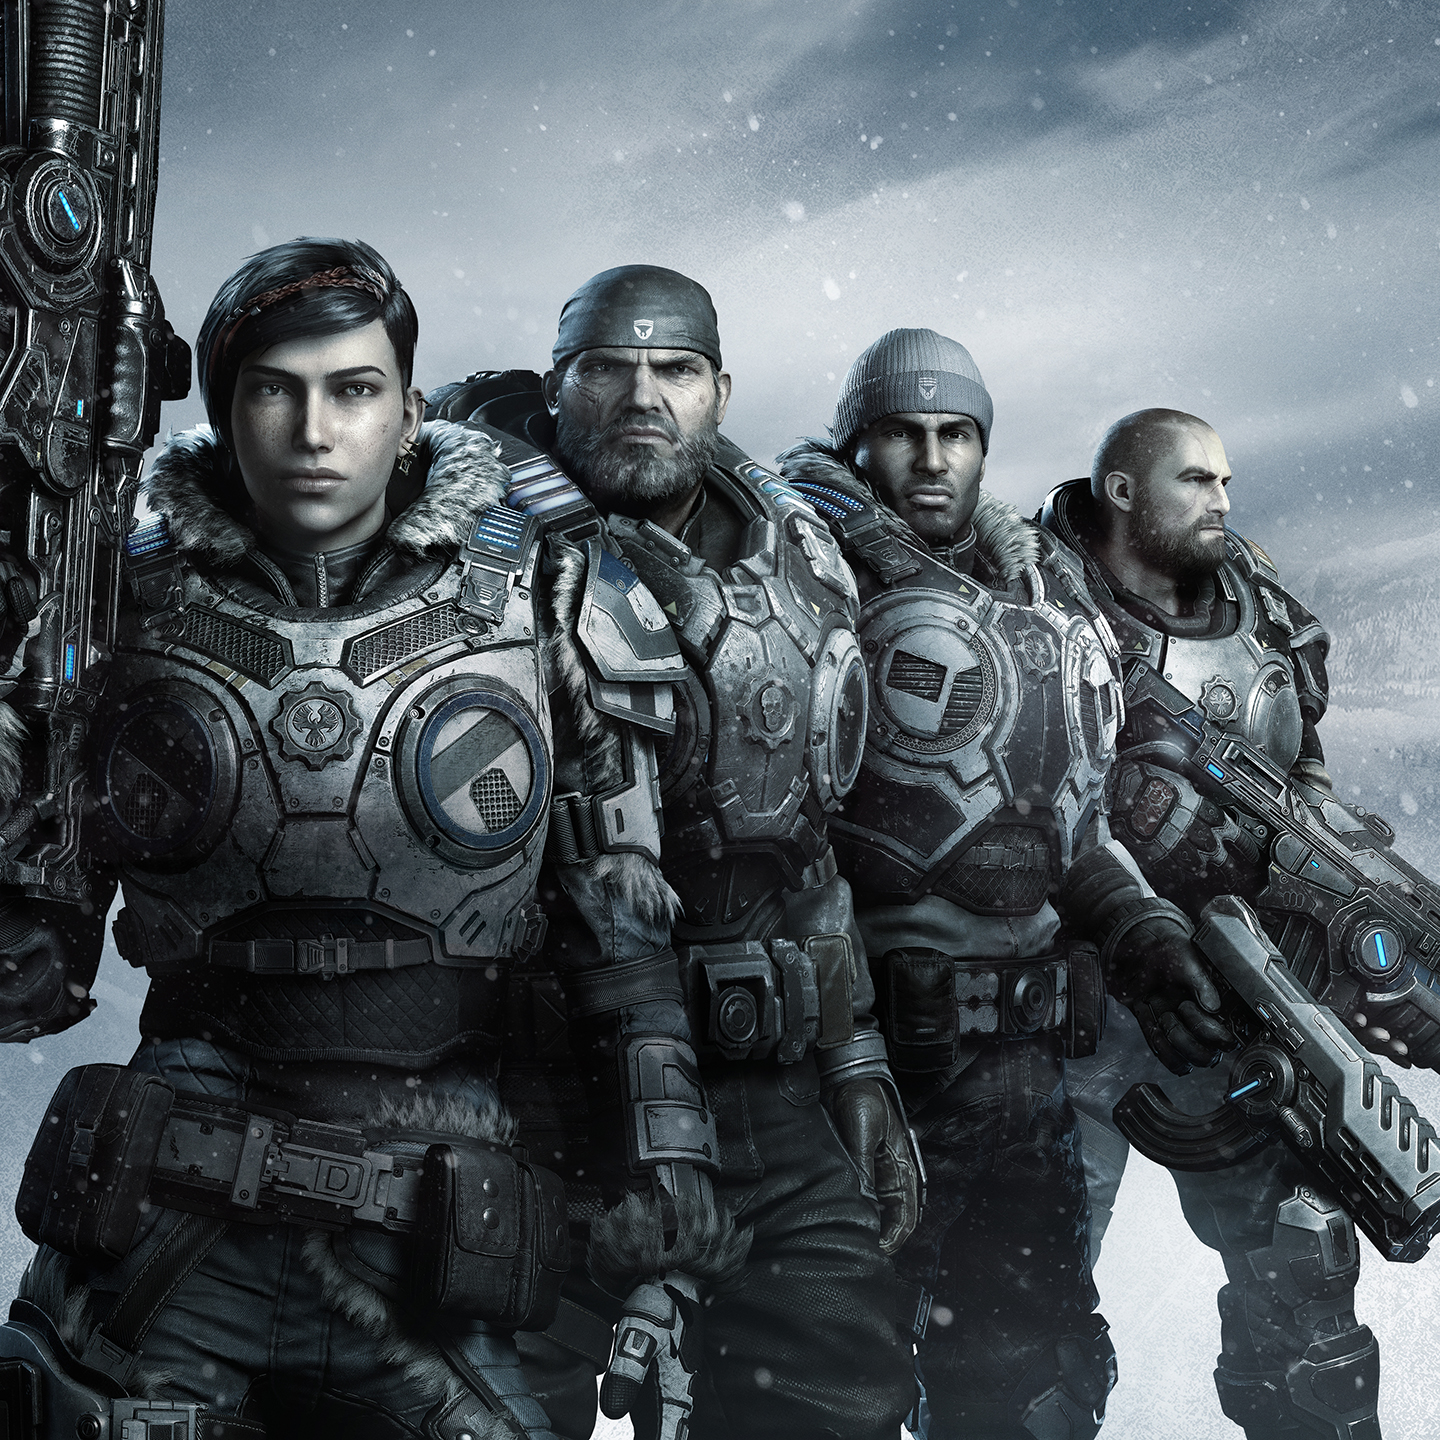 A squad of four stands assembled in front of an icy bluish white background. The image is a slightly monochromatic gray, with the hints of blue on the armor and emissives slightly more saturated. Winter Armor Kait stands in the forefront staring straight at ahead, her right arm bent as she hoists the new Lancer up against her shoulder. Armored Marcus stands just behind her to her left. He stares forward challengingly, his signature do-rag on his head, and his bushy grizzled beard slightly more gray. Winter Armored Del stands to Marcusu2019s right holding the Talon AutoPistol in his left hand, the unique curved ammo cartridge just visible. He also looks straight ahead. And standing to Delu2019s left is Armored JD, his injured right arm just barely visible, as holds the Lancer GL at the ready. His right arm bent, and the weapon pointing muzzle down. He alone, is looking off to his left, and away from where the rest of the squad are looking.